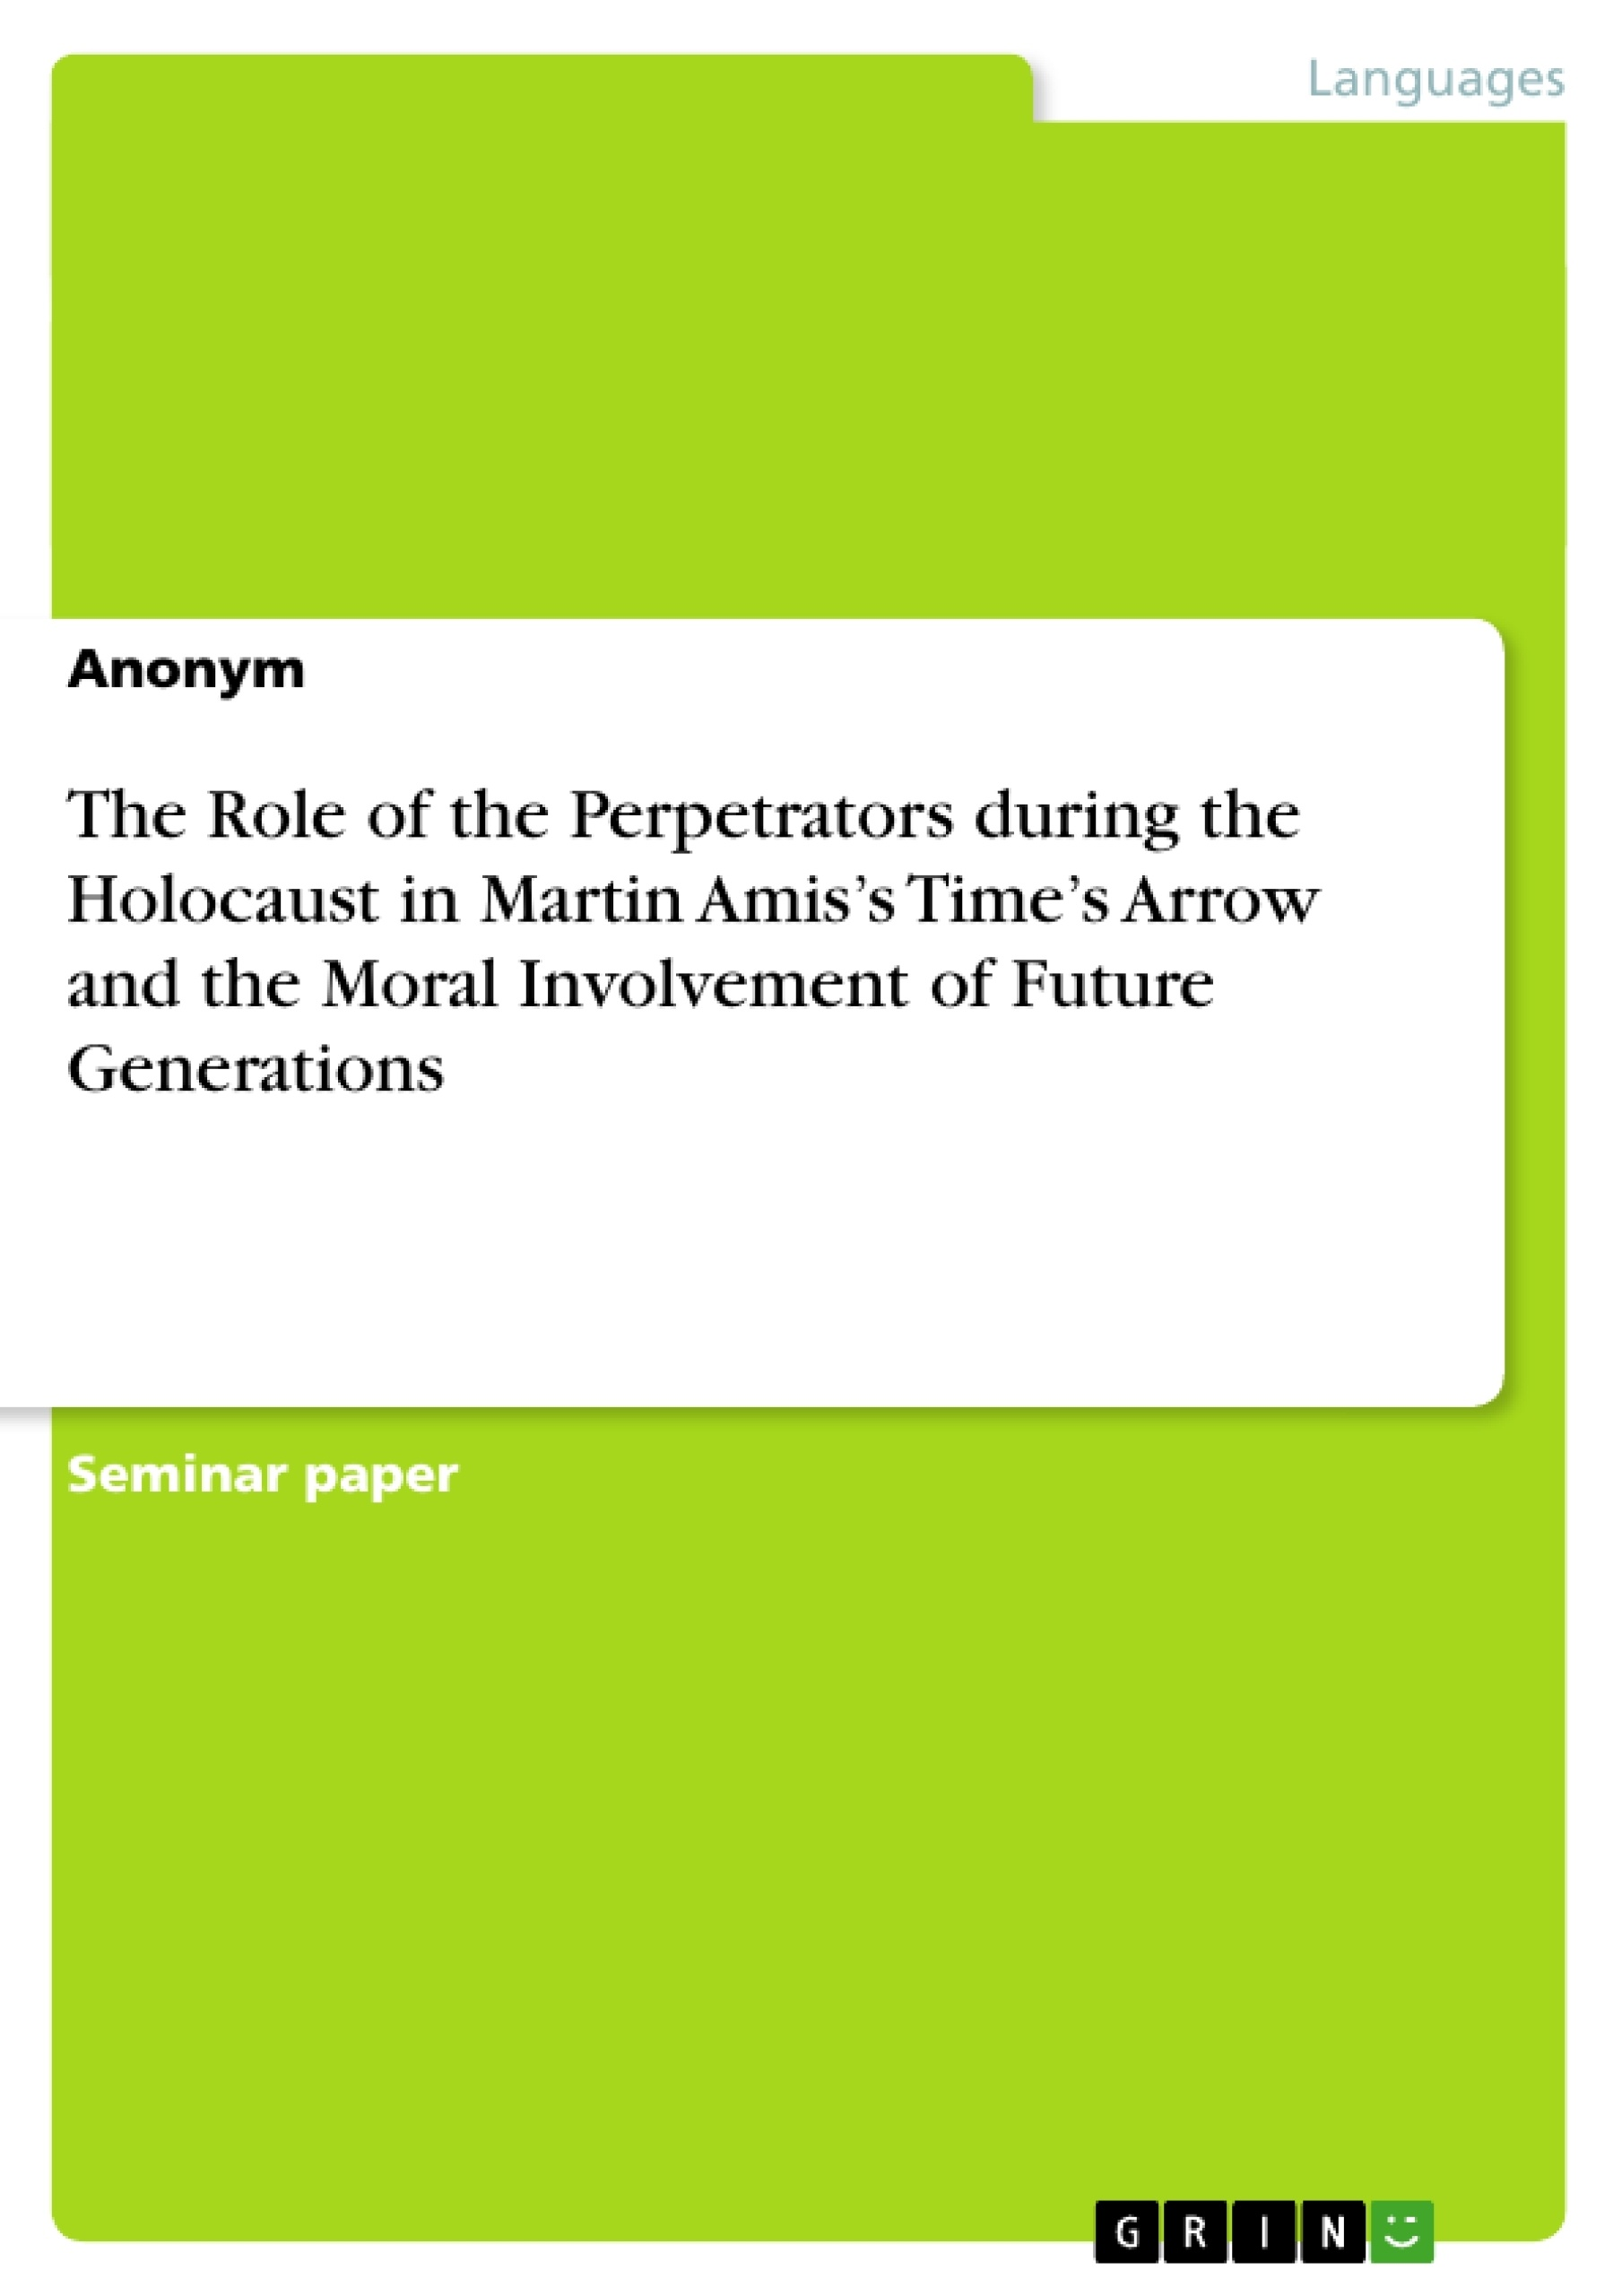 Title: The Role of the Perpetrators during the Holocaust in Martin Amis's Time's Arrow and the Moral Involvement of Future Generations